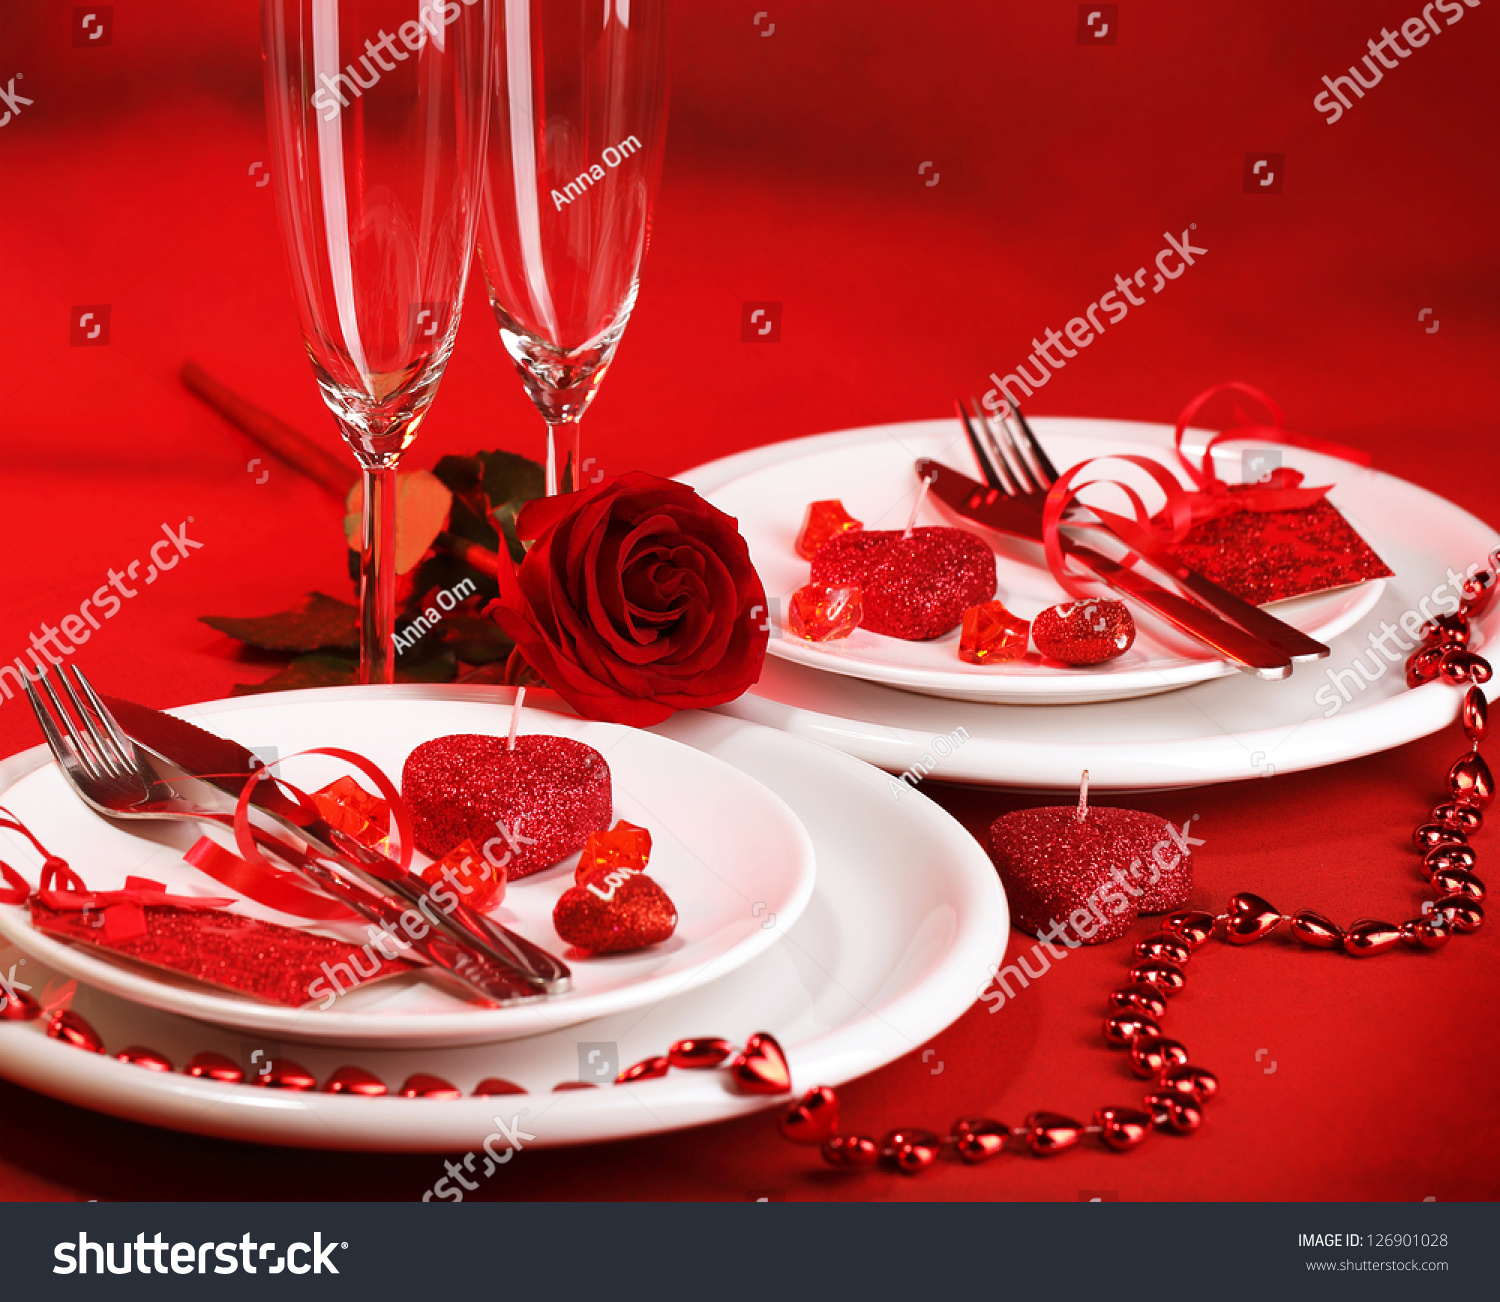 Photo Romantic Dinner Table Setting Holiday Stock Photo